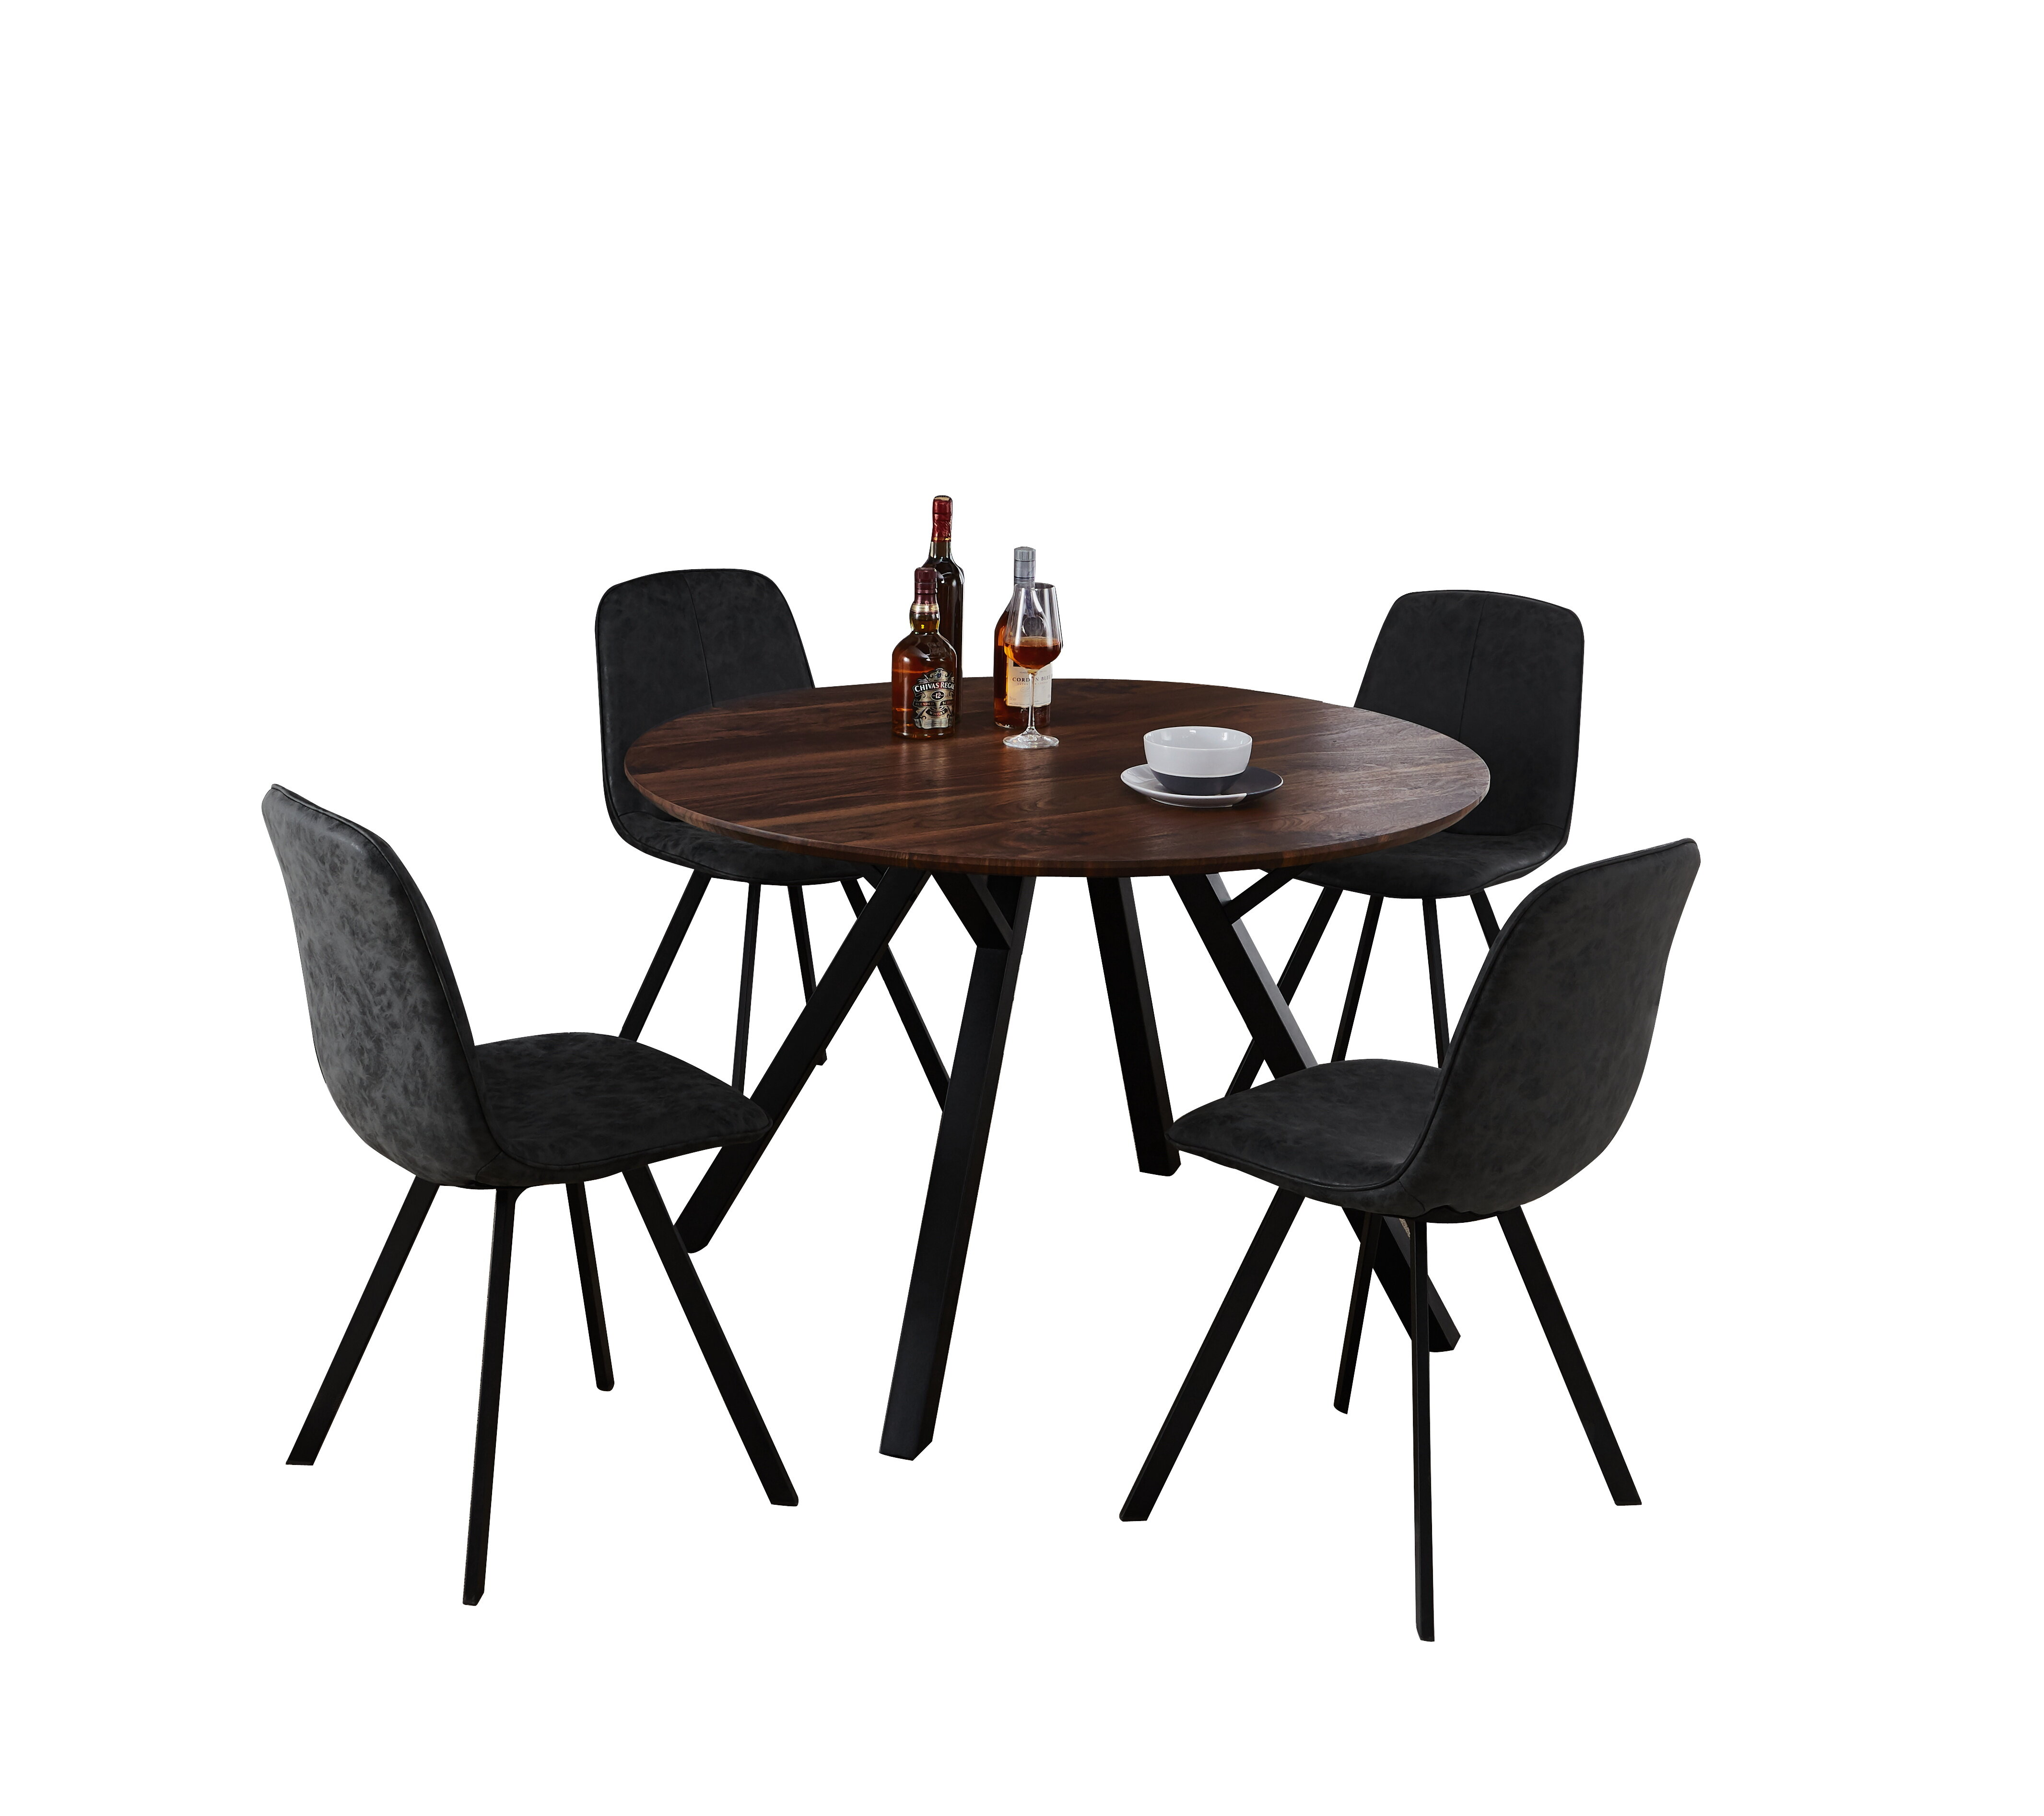 hot sales e5d46 a415e Malmo Design Round Table 5 Piece Solid Wood Dining Set